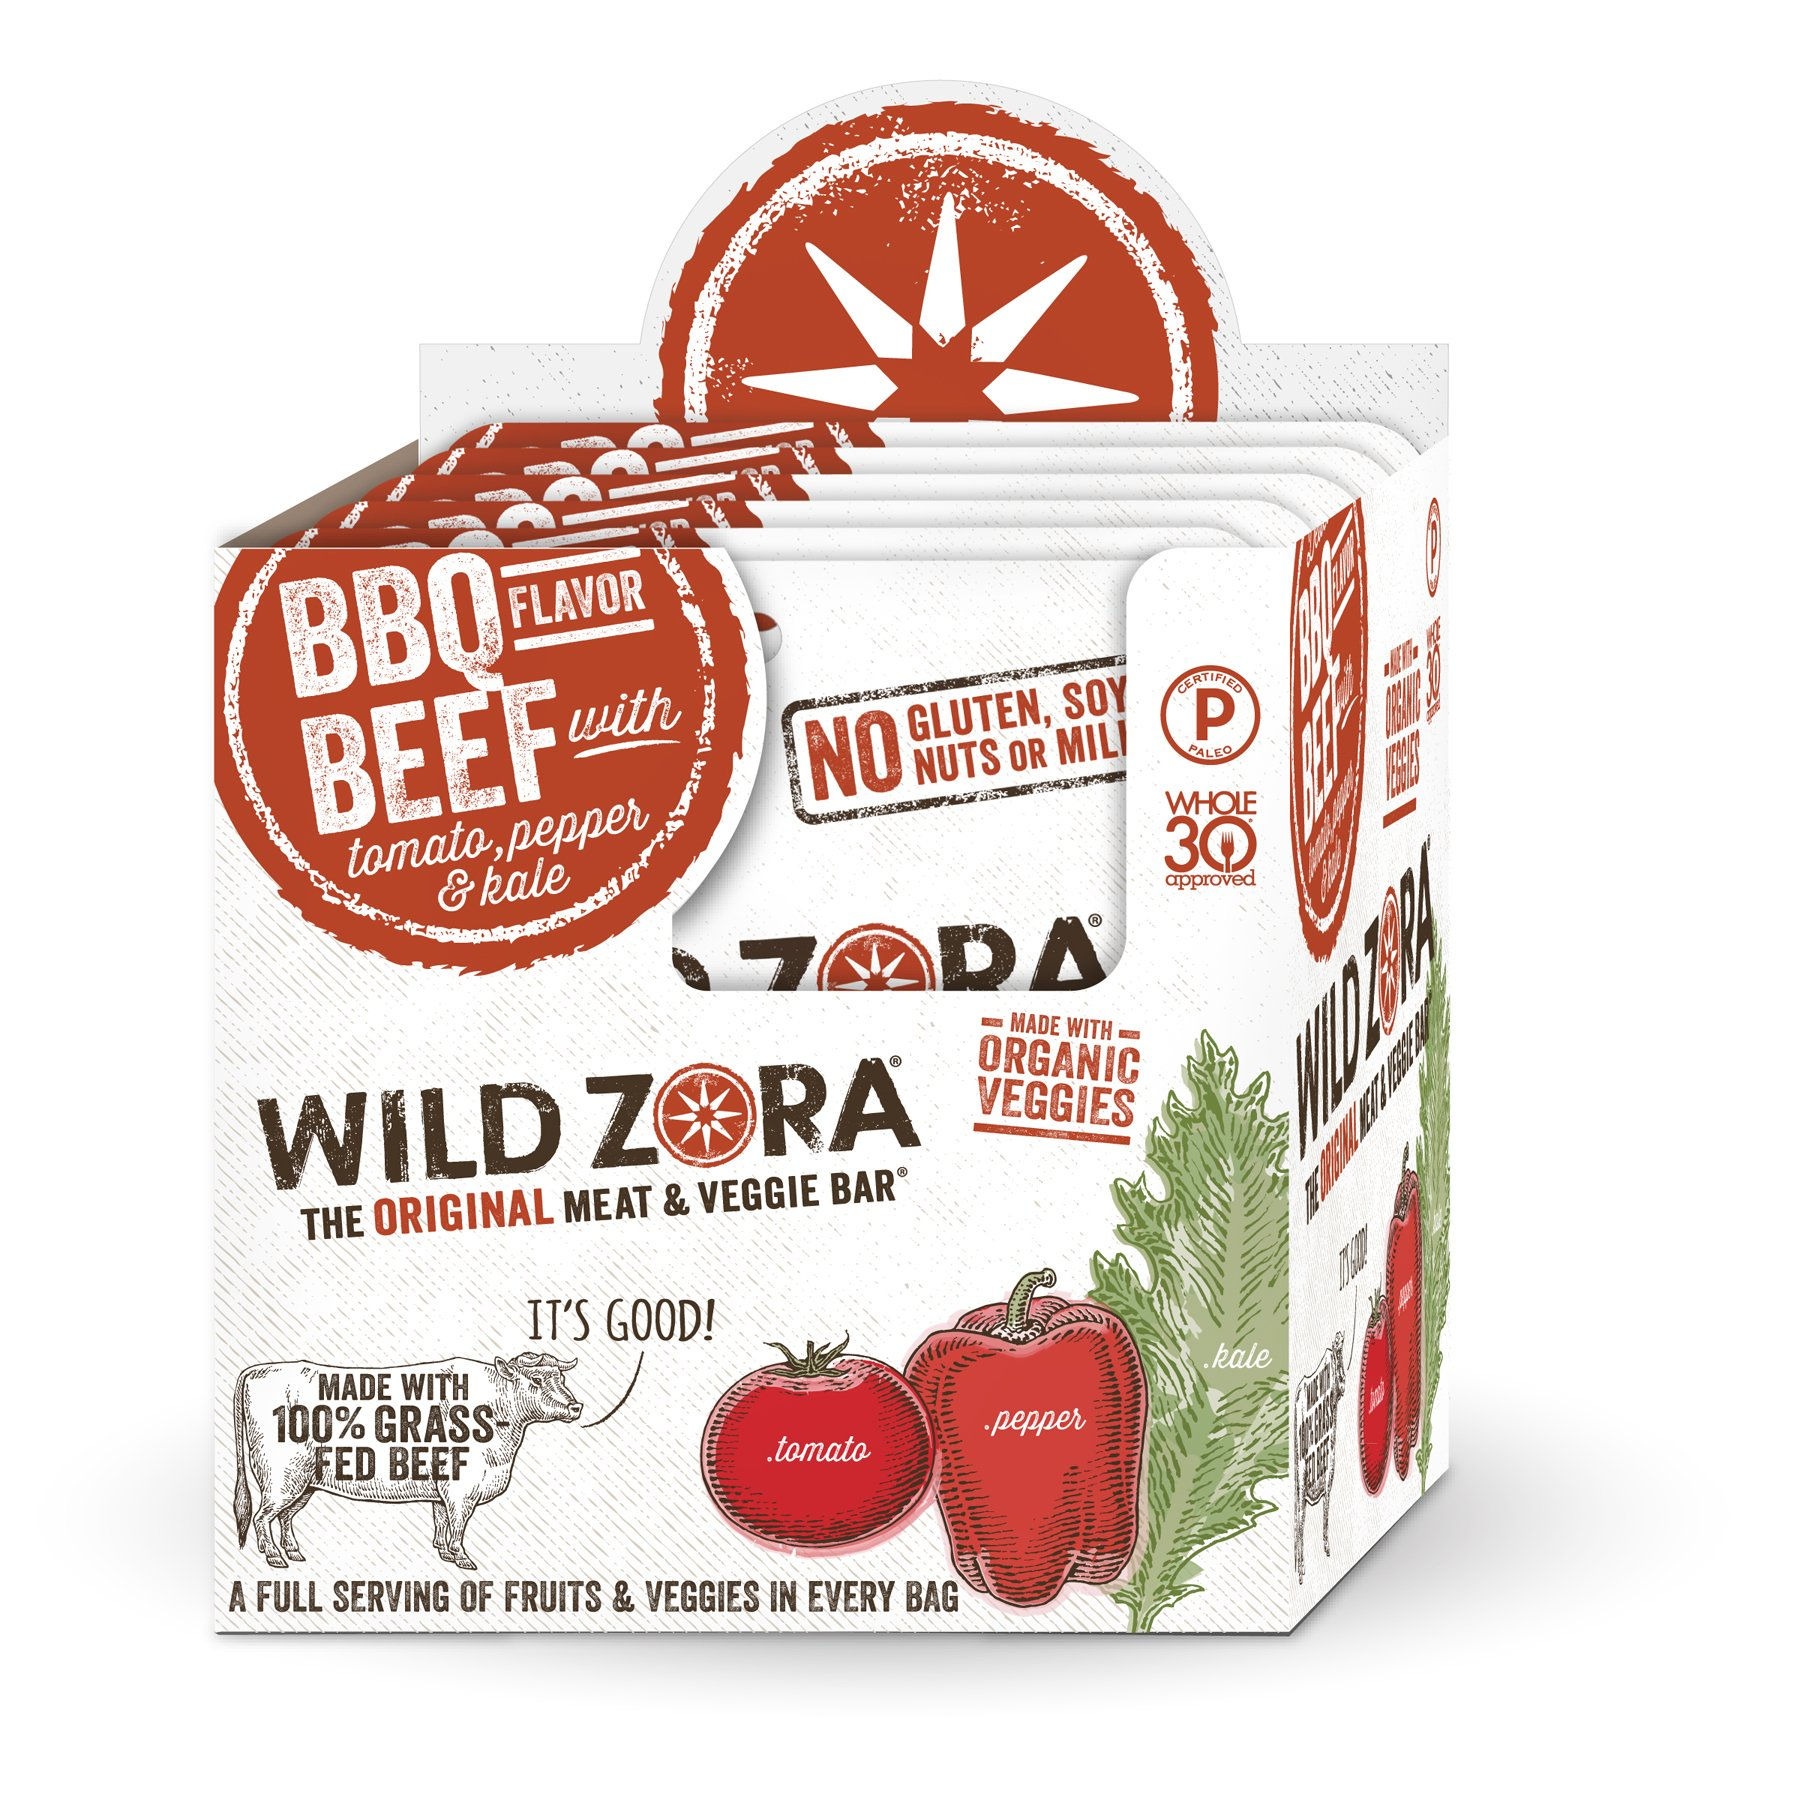 BBQ Beef - Meat and Veggie Bar (12-pack) are made with grass-fed beef and organic vegetables. Our paleo beef snacks are gluten-free and Whole30 Approved. This is beef jerky kicked up to a new level.